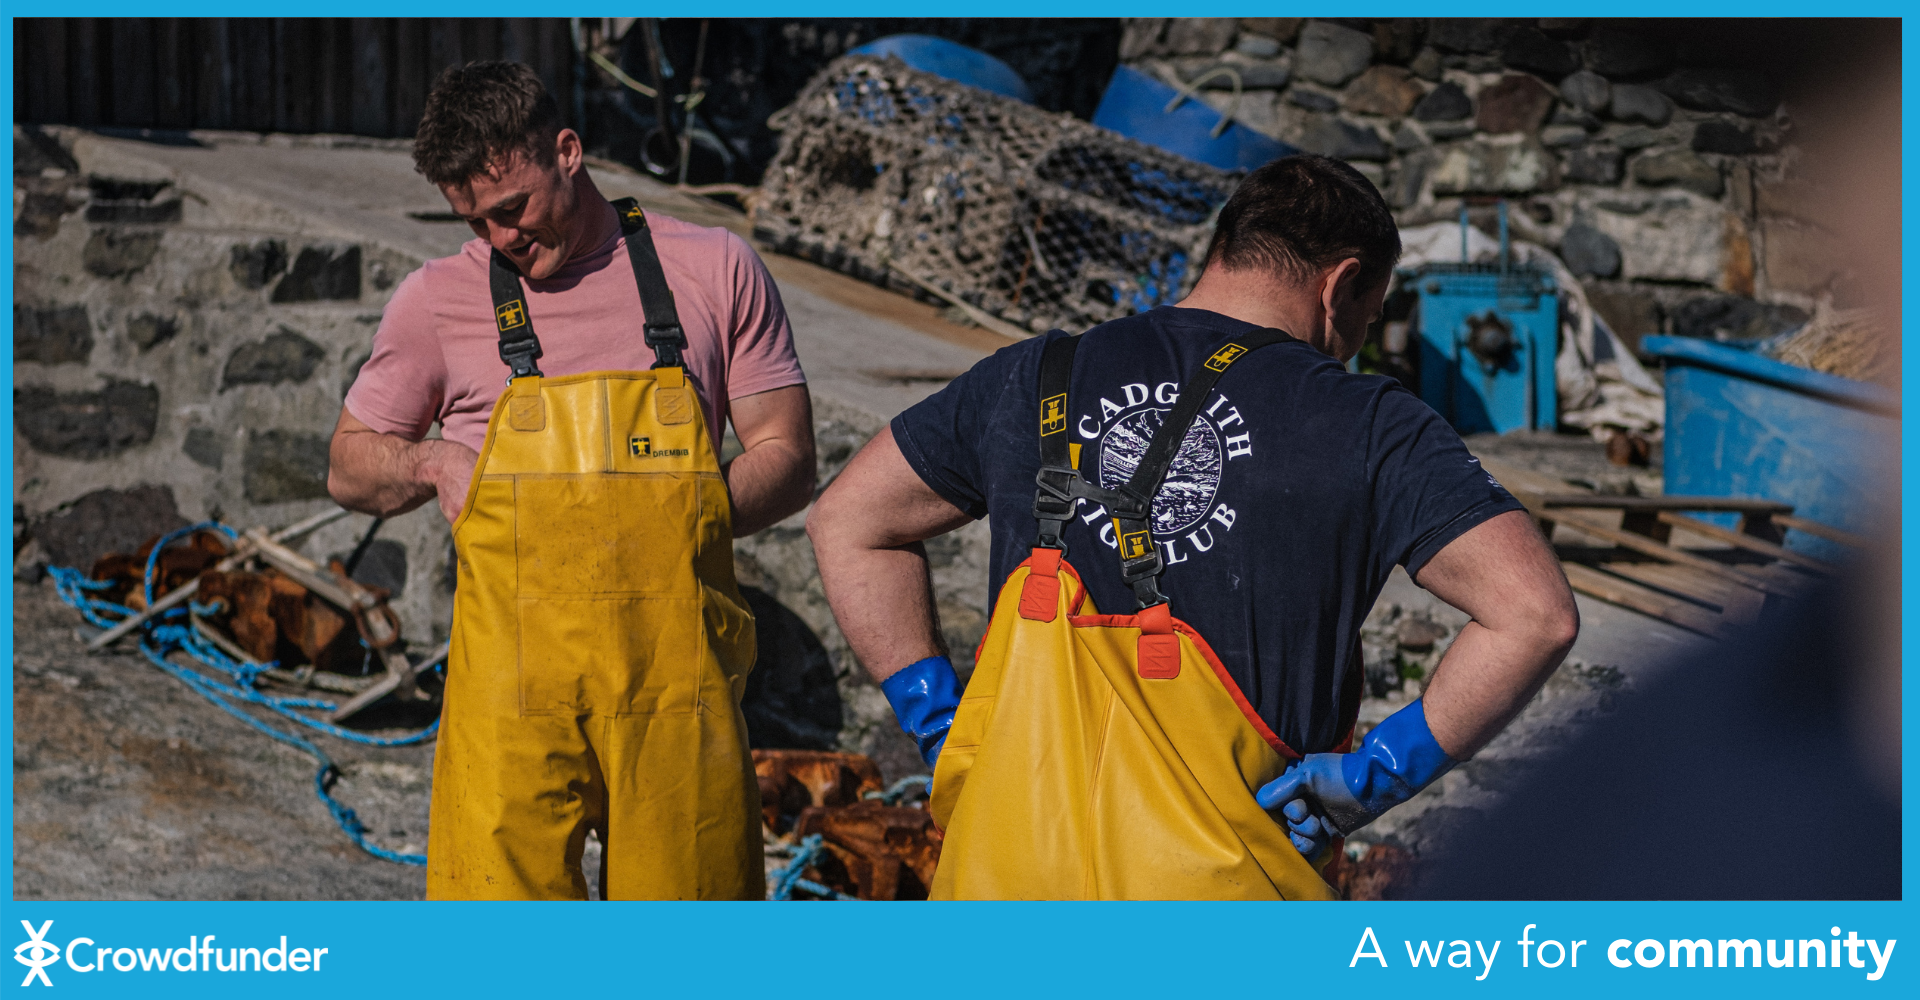 We have a way: the fishermen of Cadgwith